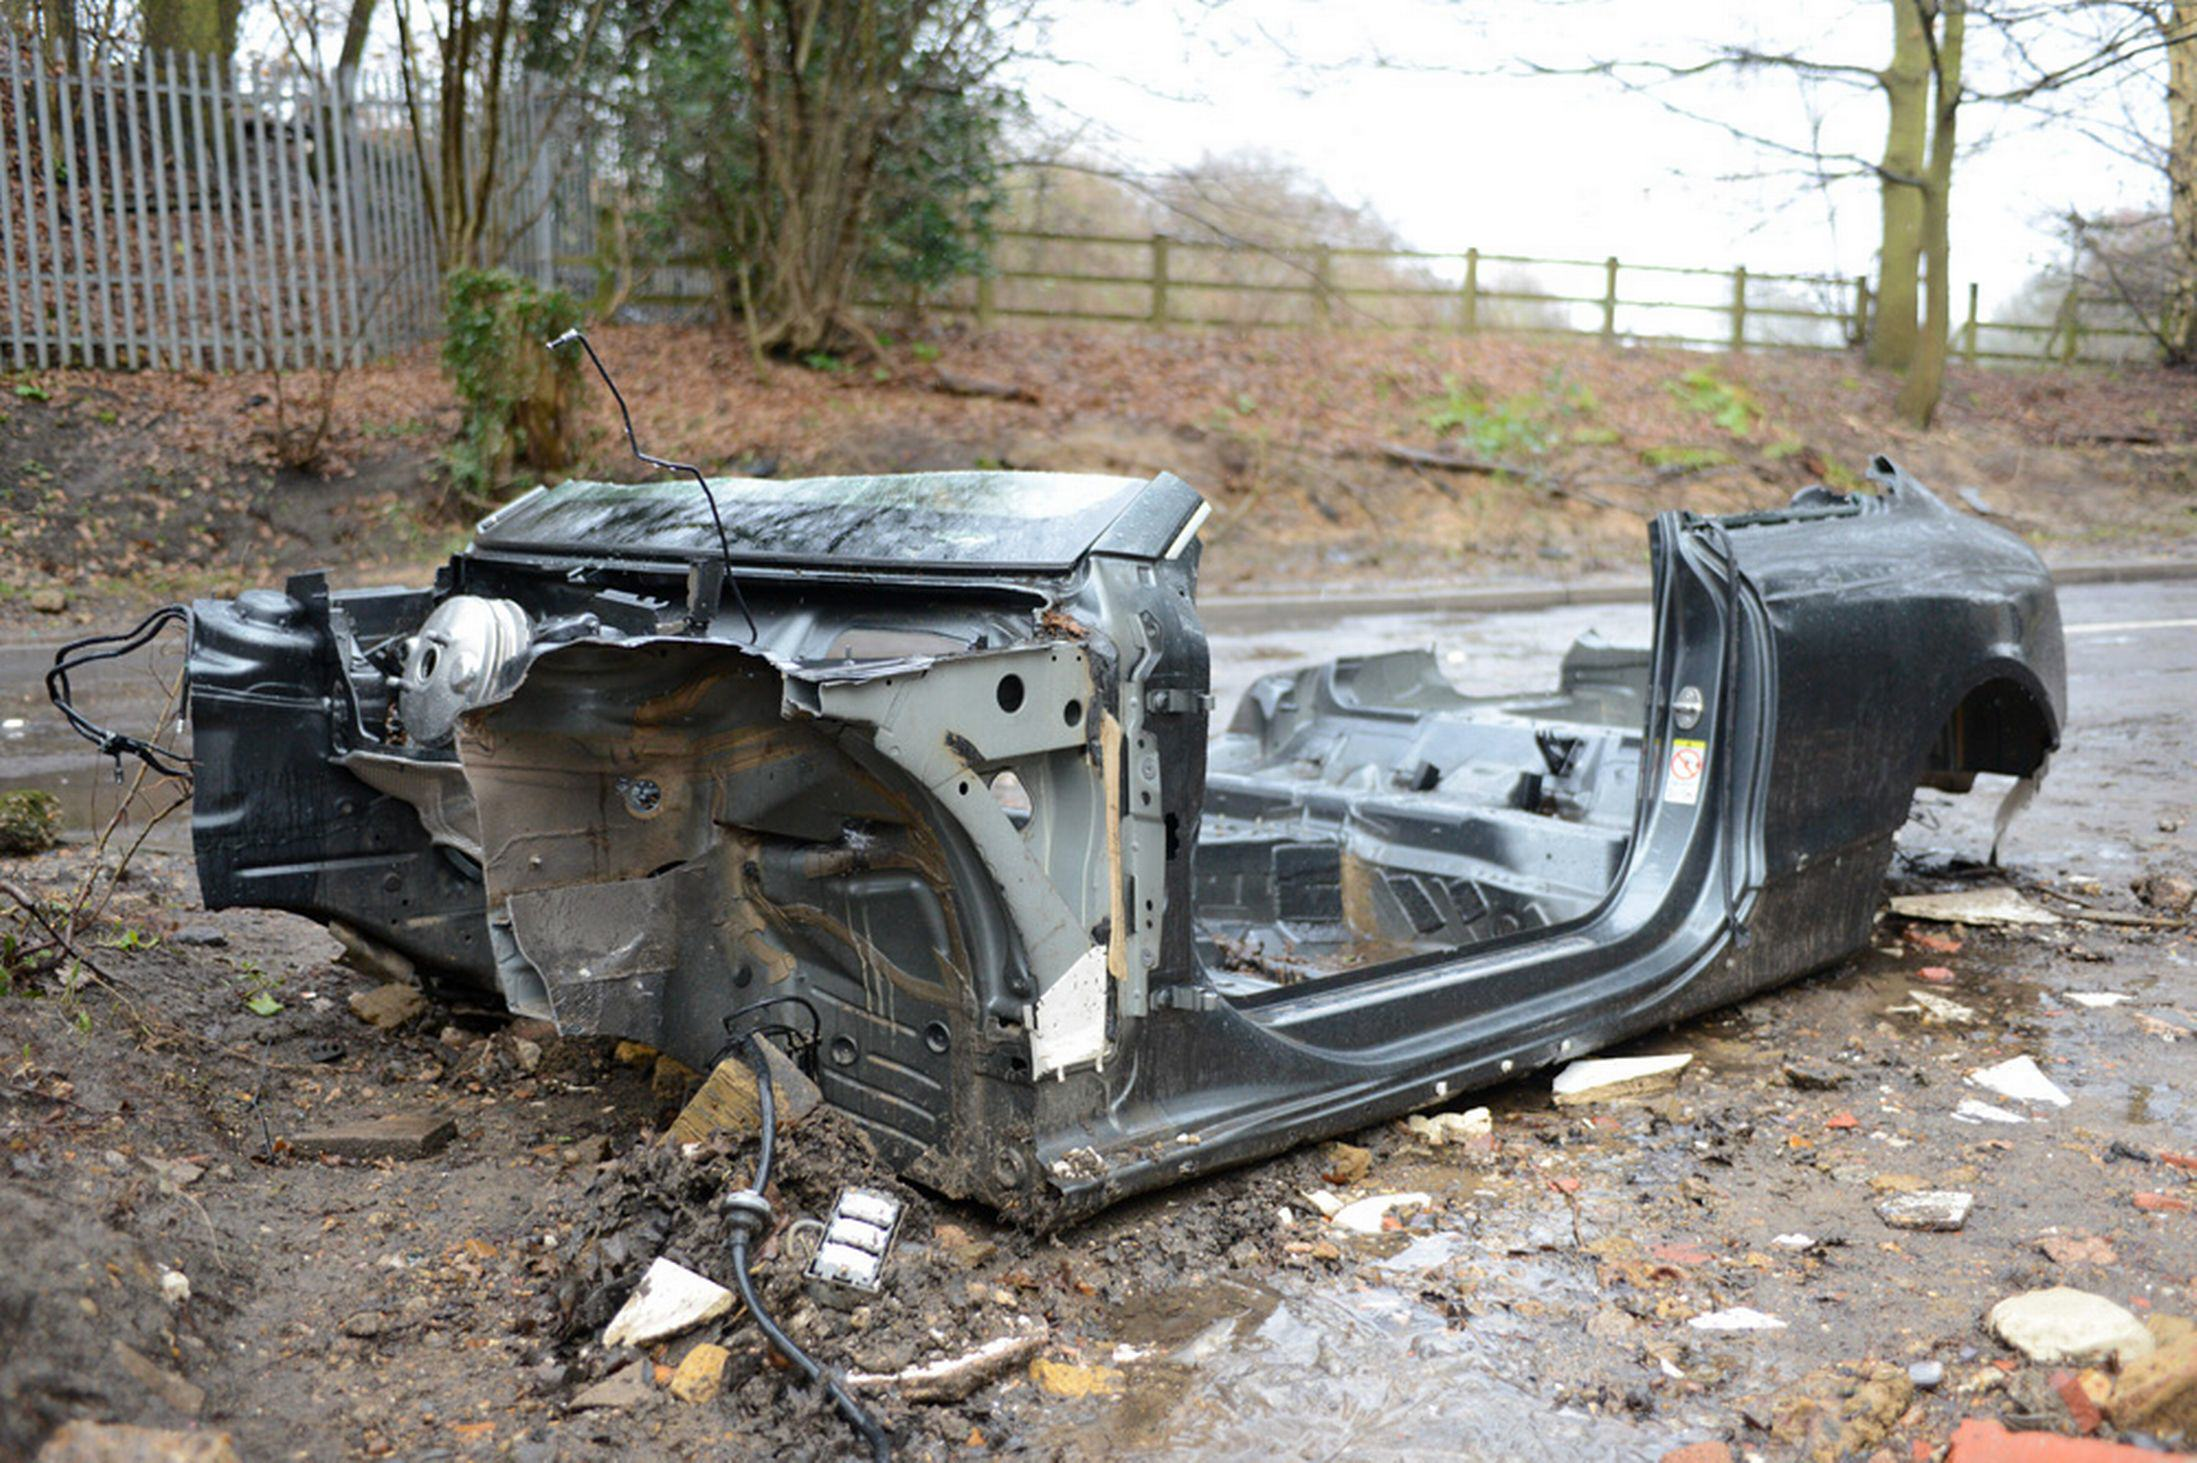 Audi RS5 Worth £60K Stripped To Its Chassis After Breaking Down In Floods Audi RS5 Stripped 3116665